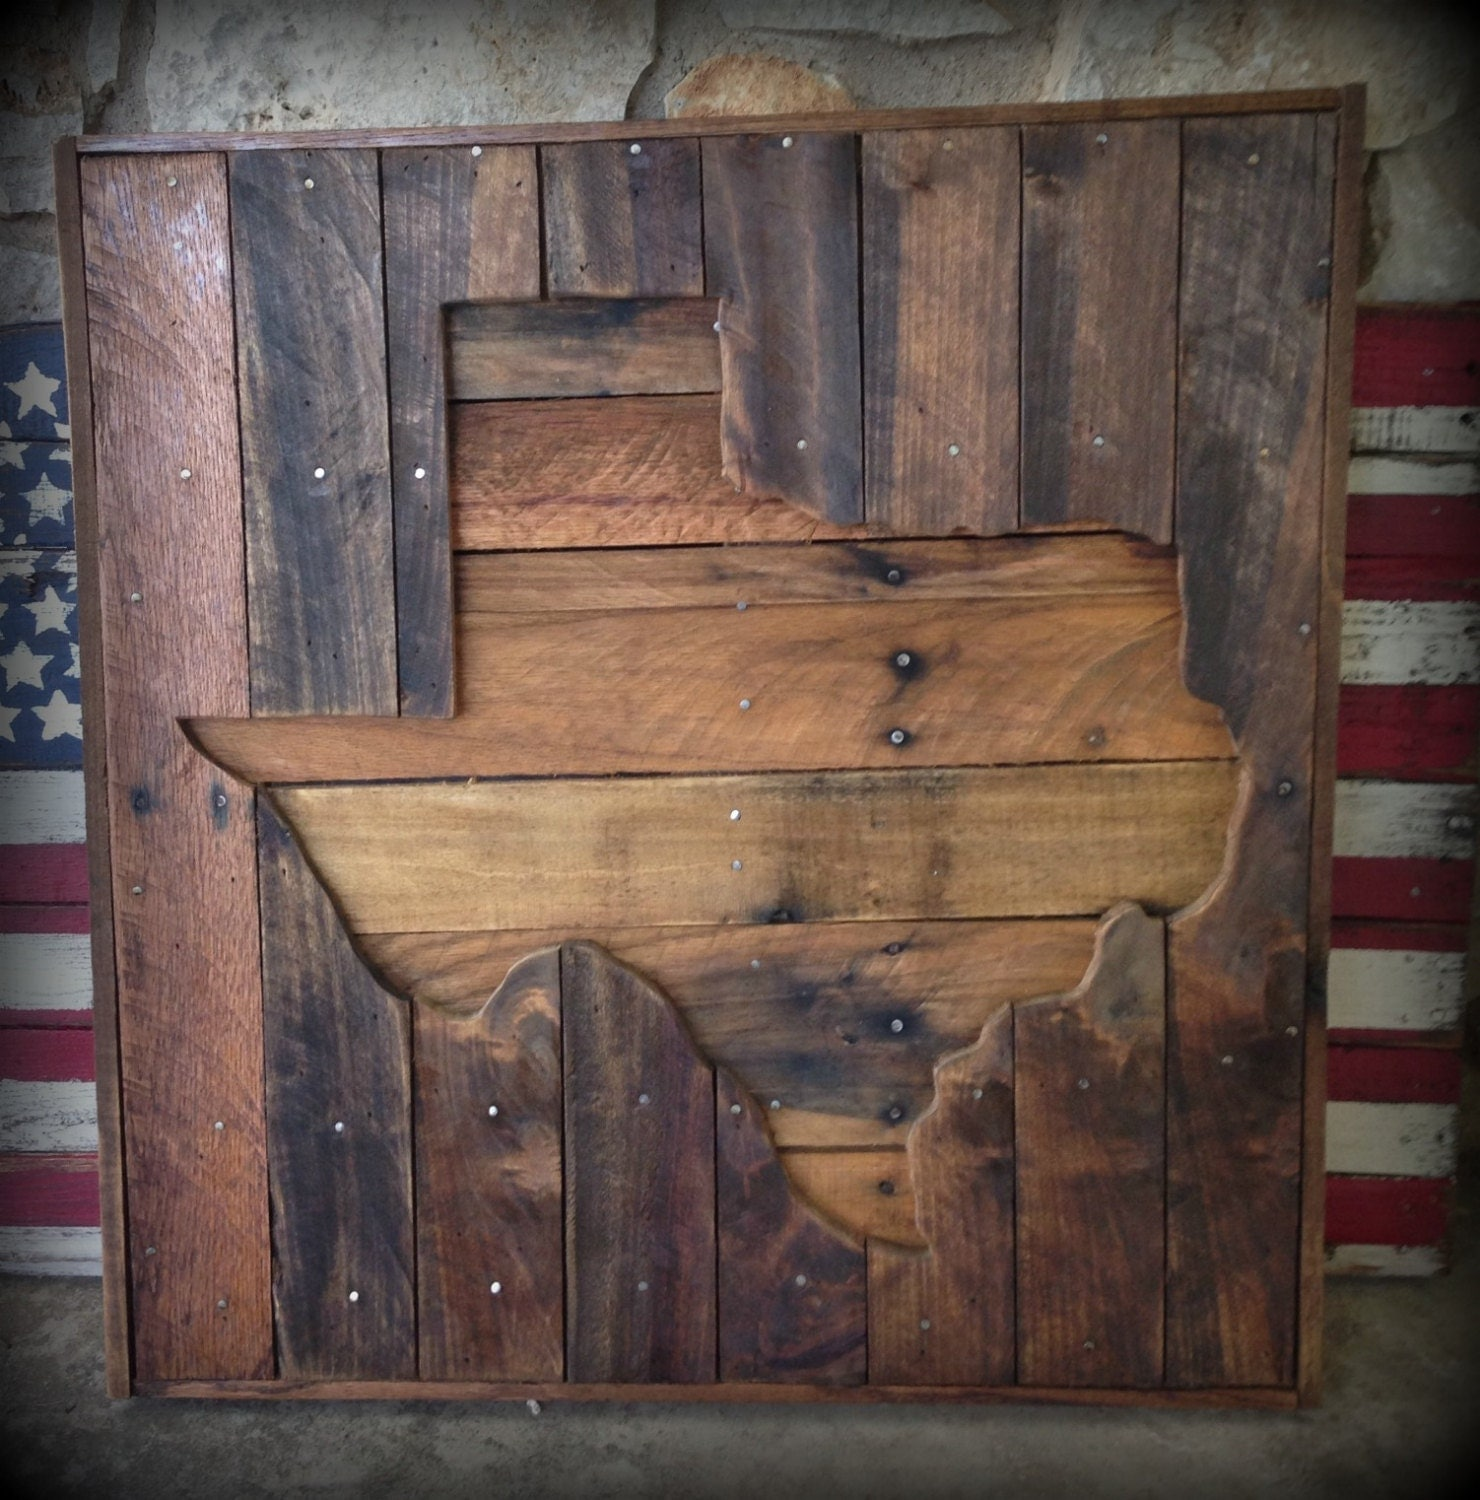 Recycled Pallet Ideas: Wood Texas Pallet Sign Wall Hangings Pallet Signage Texas